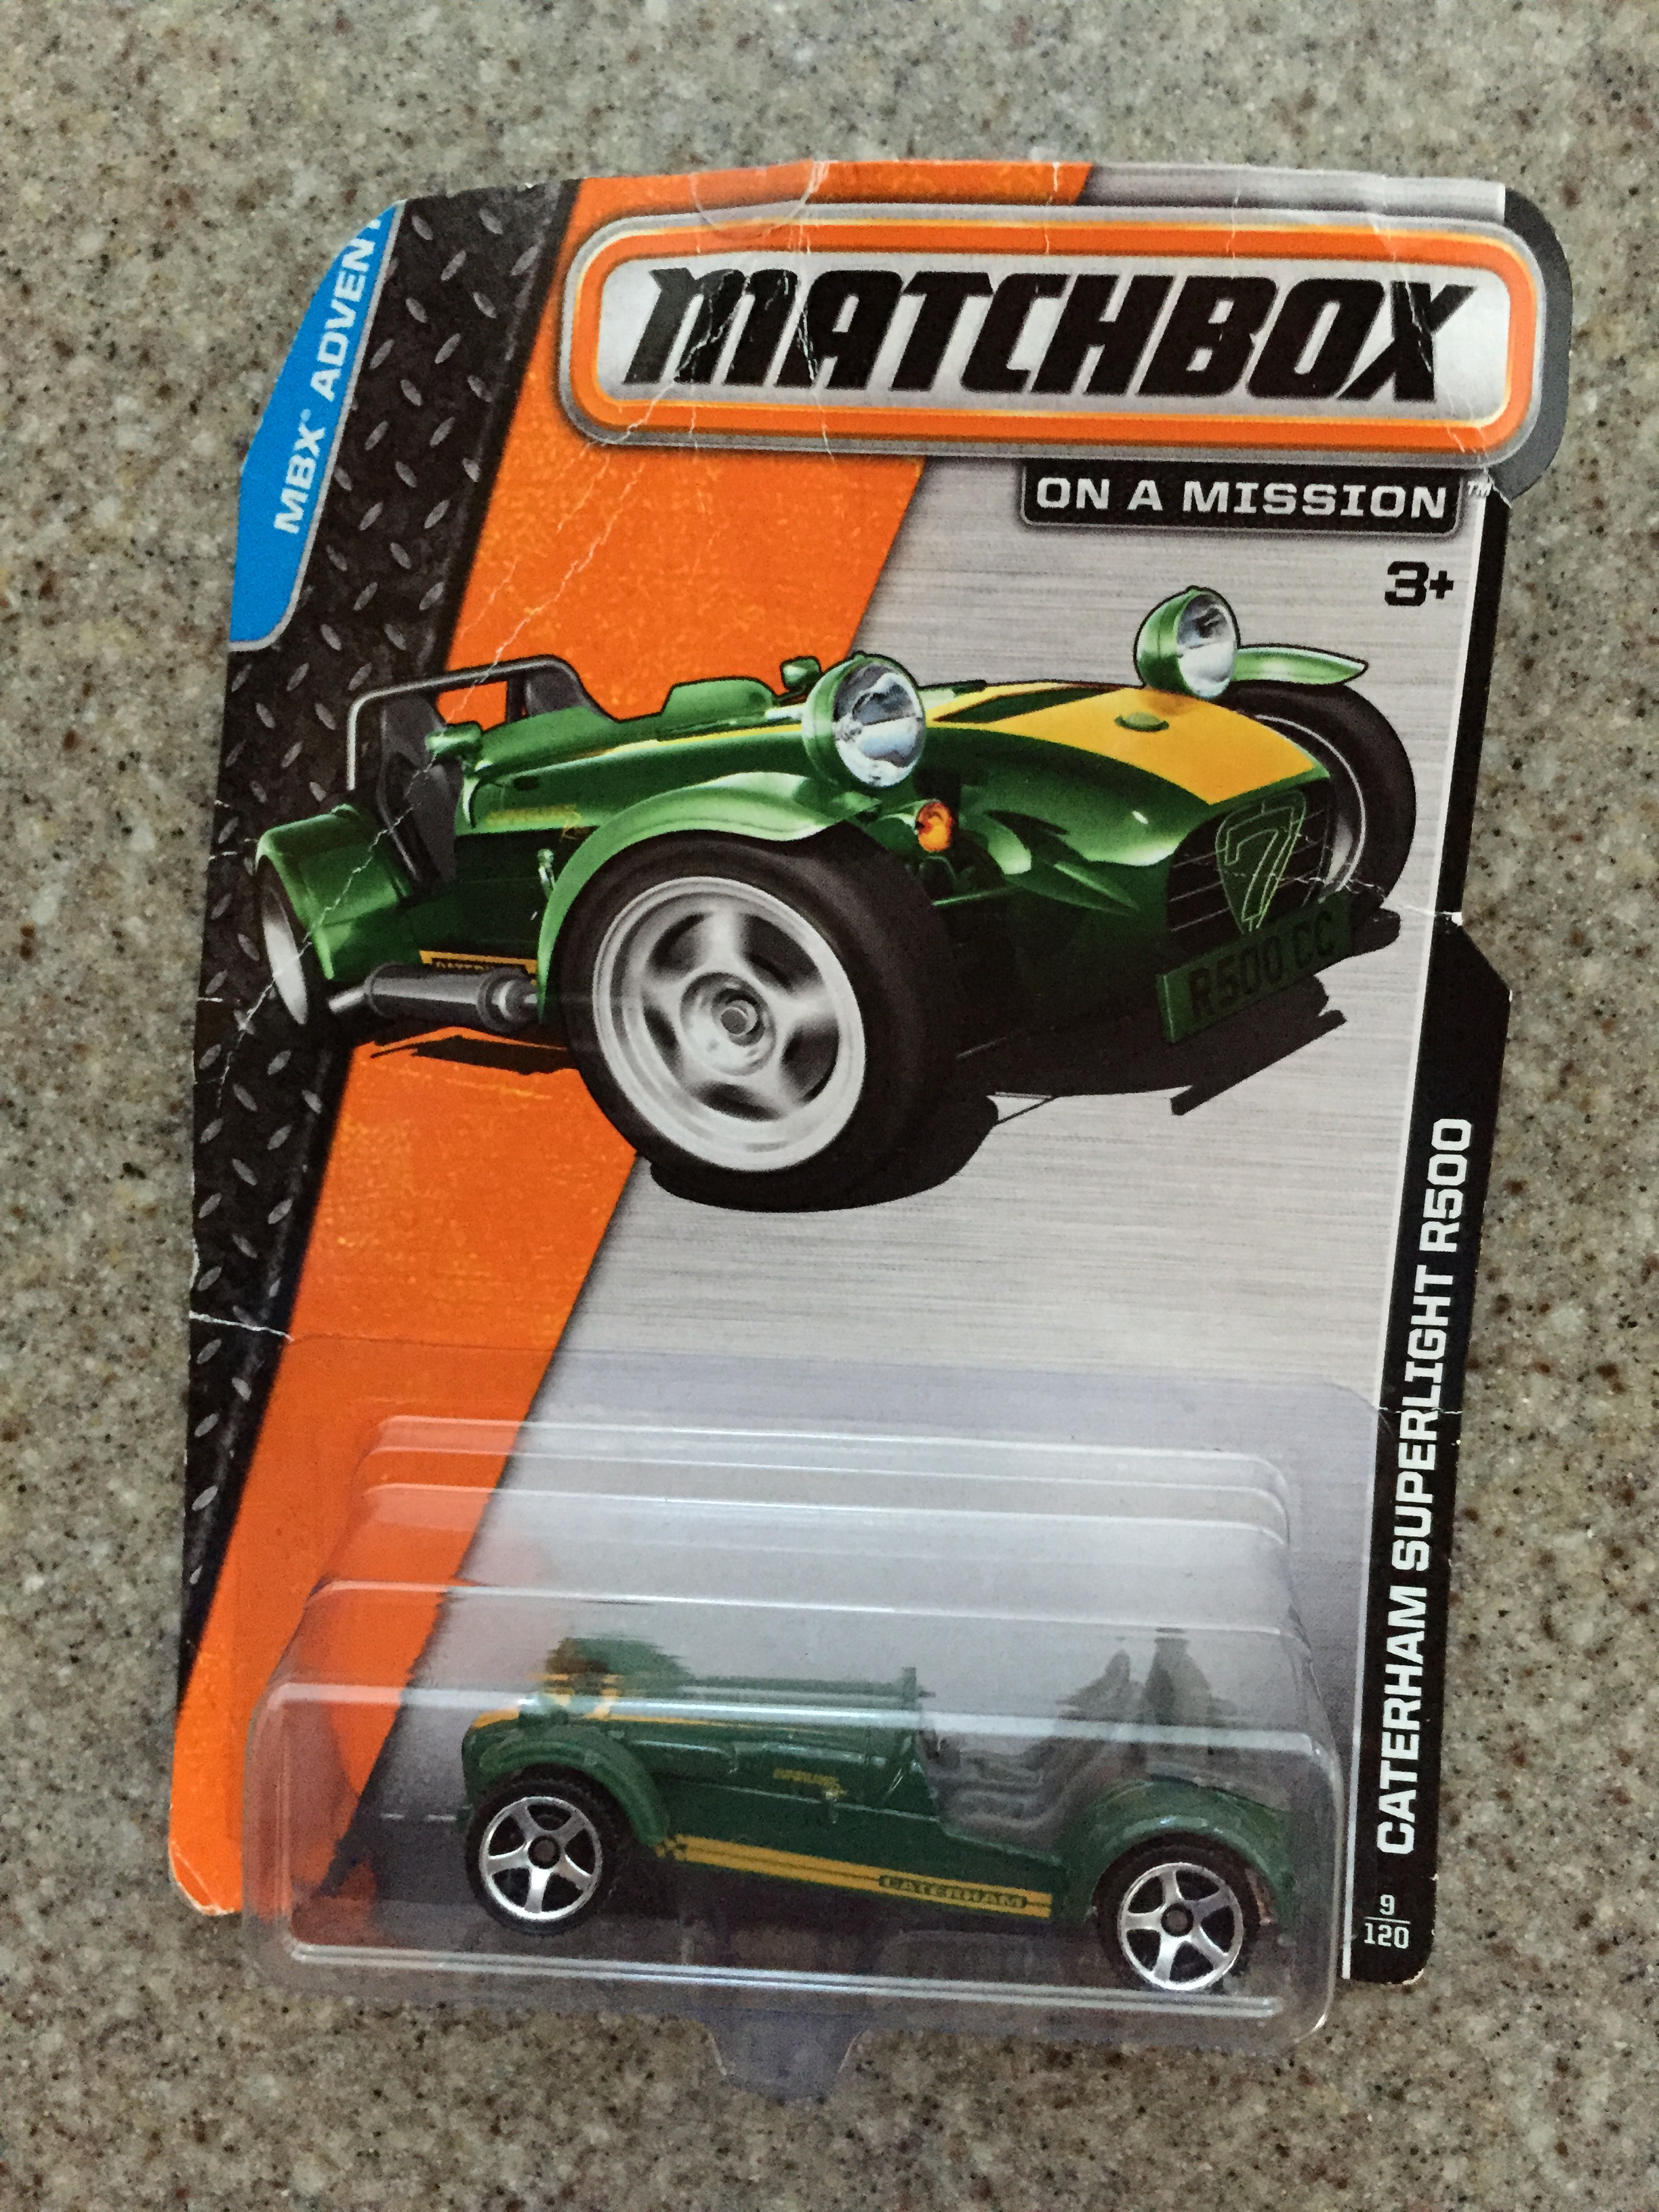 Another green Caterham